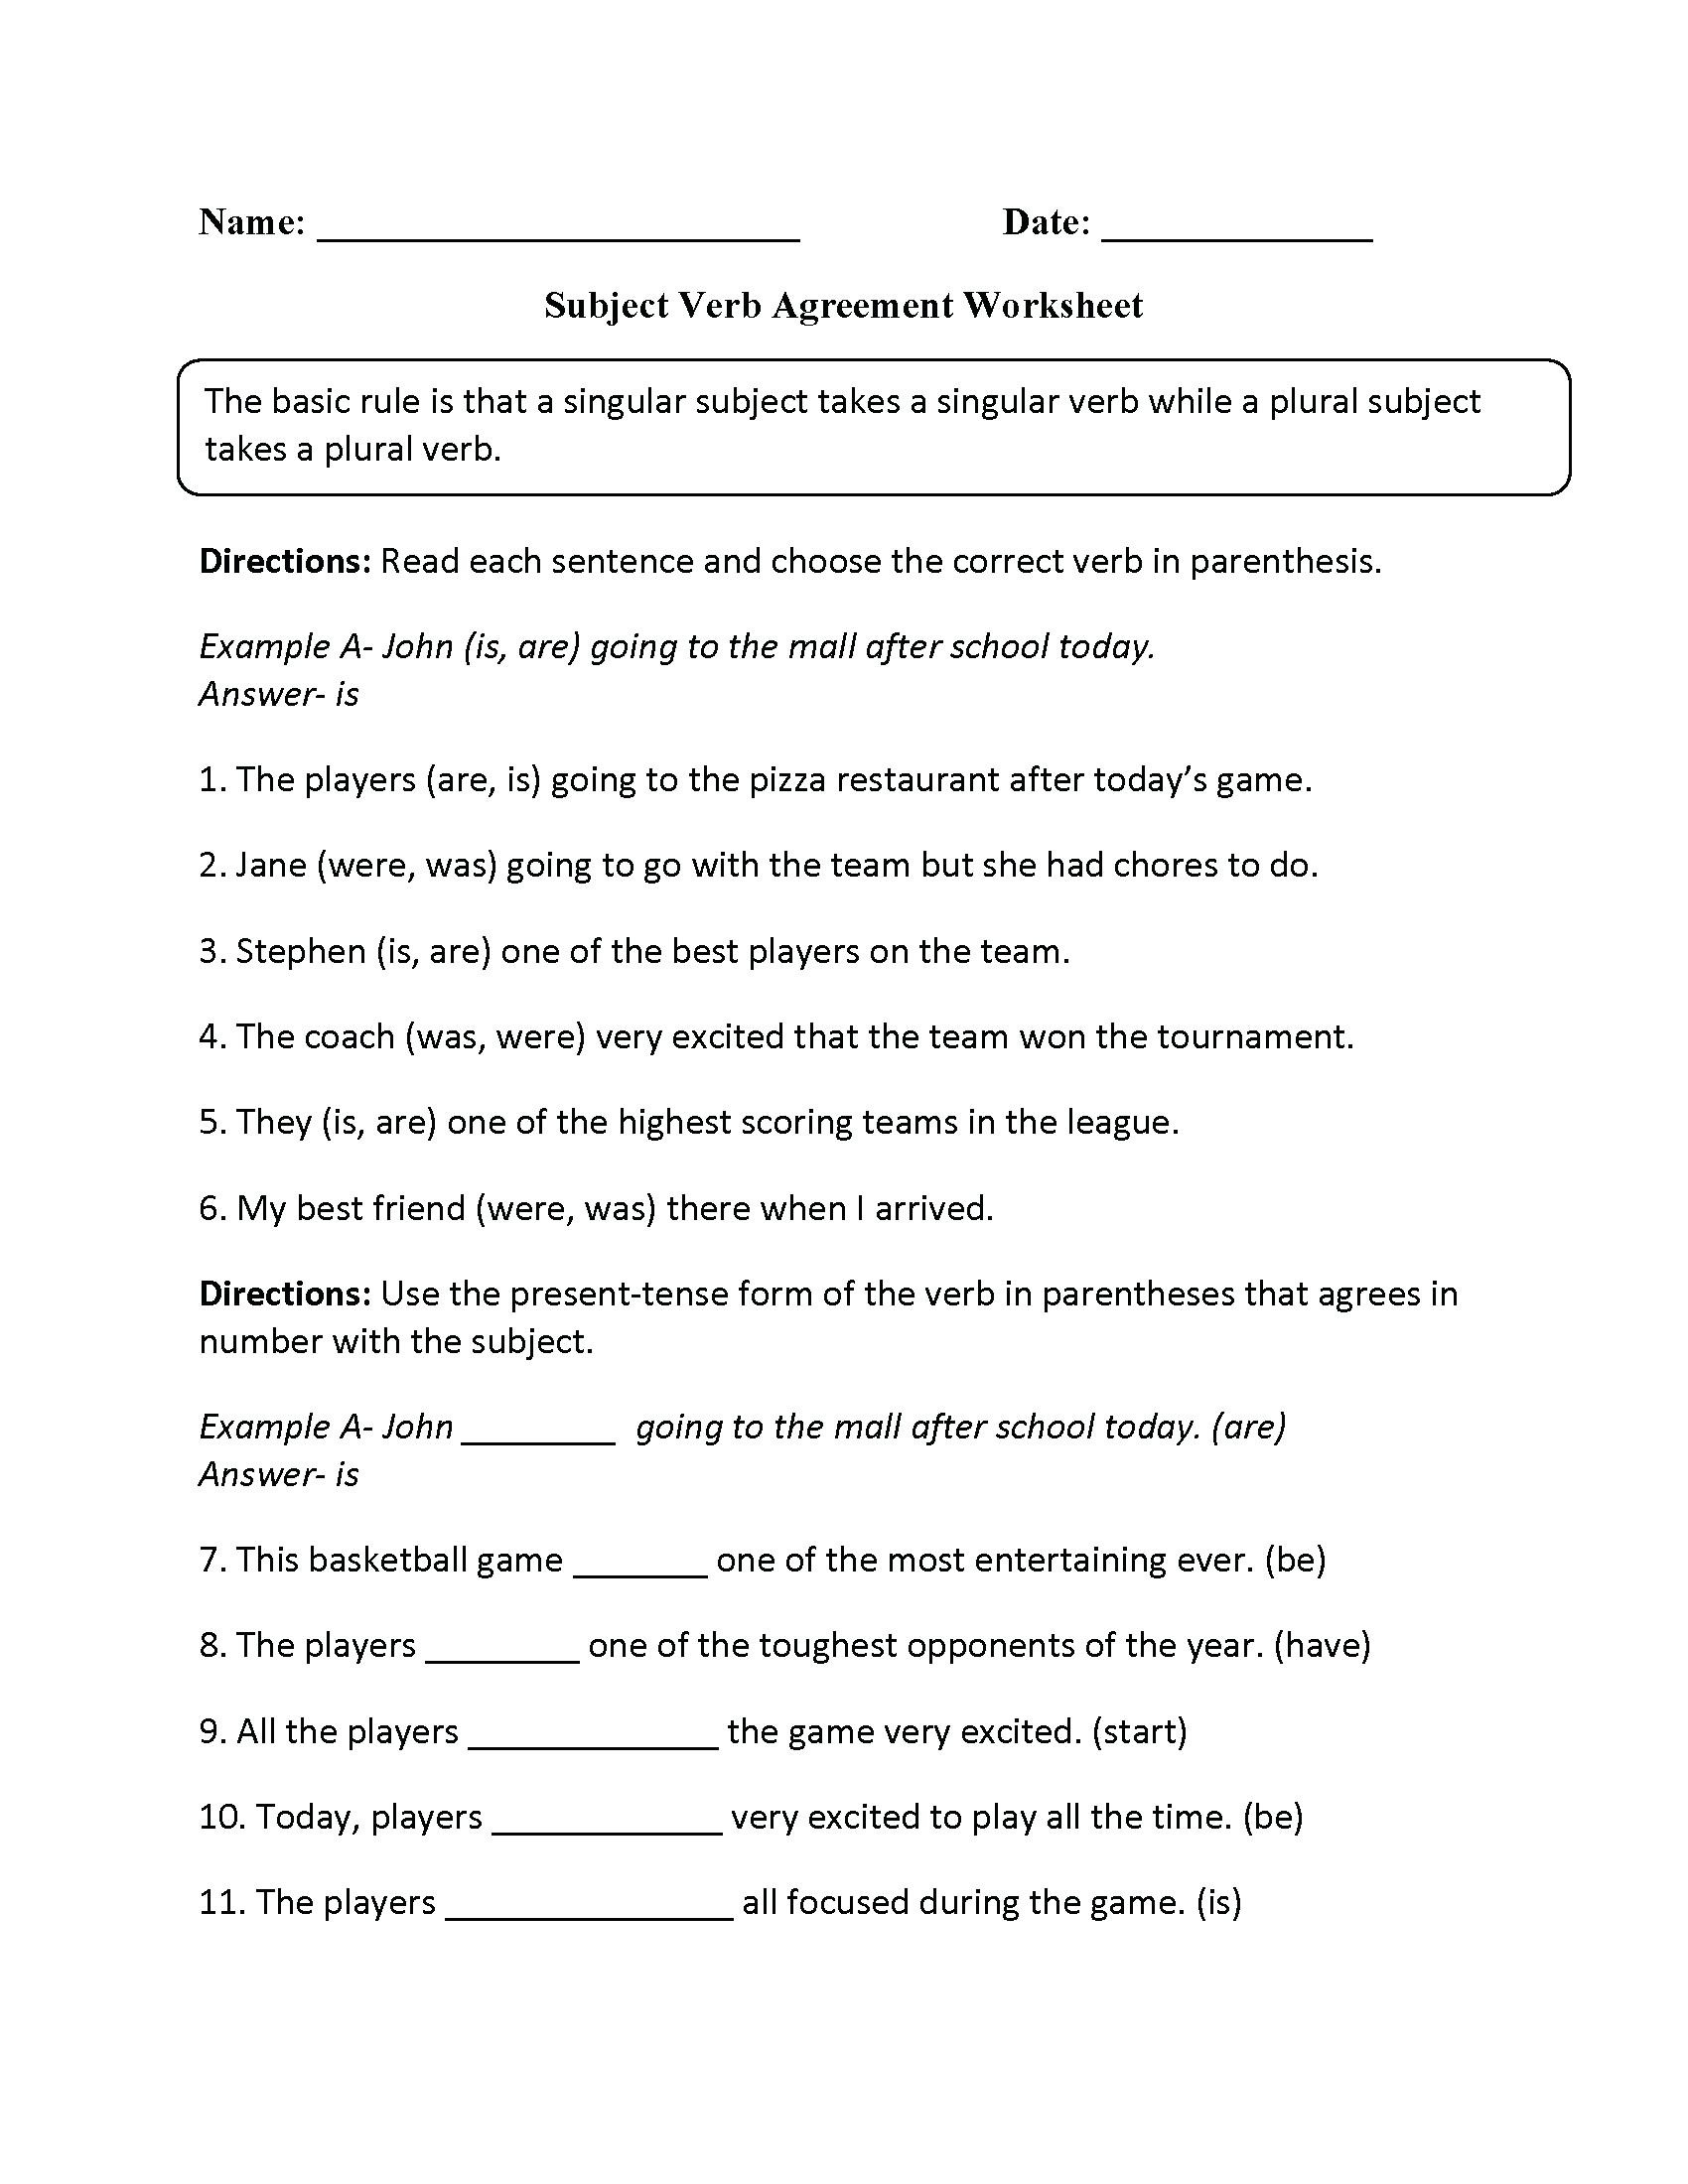 Grammar Worksheets for 8th Graders 7th and 8th Grade Math Worksheets Second Grade Worksheets